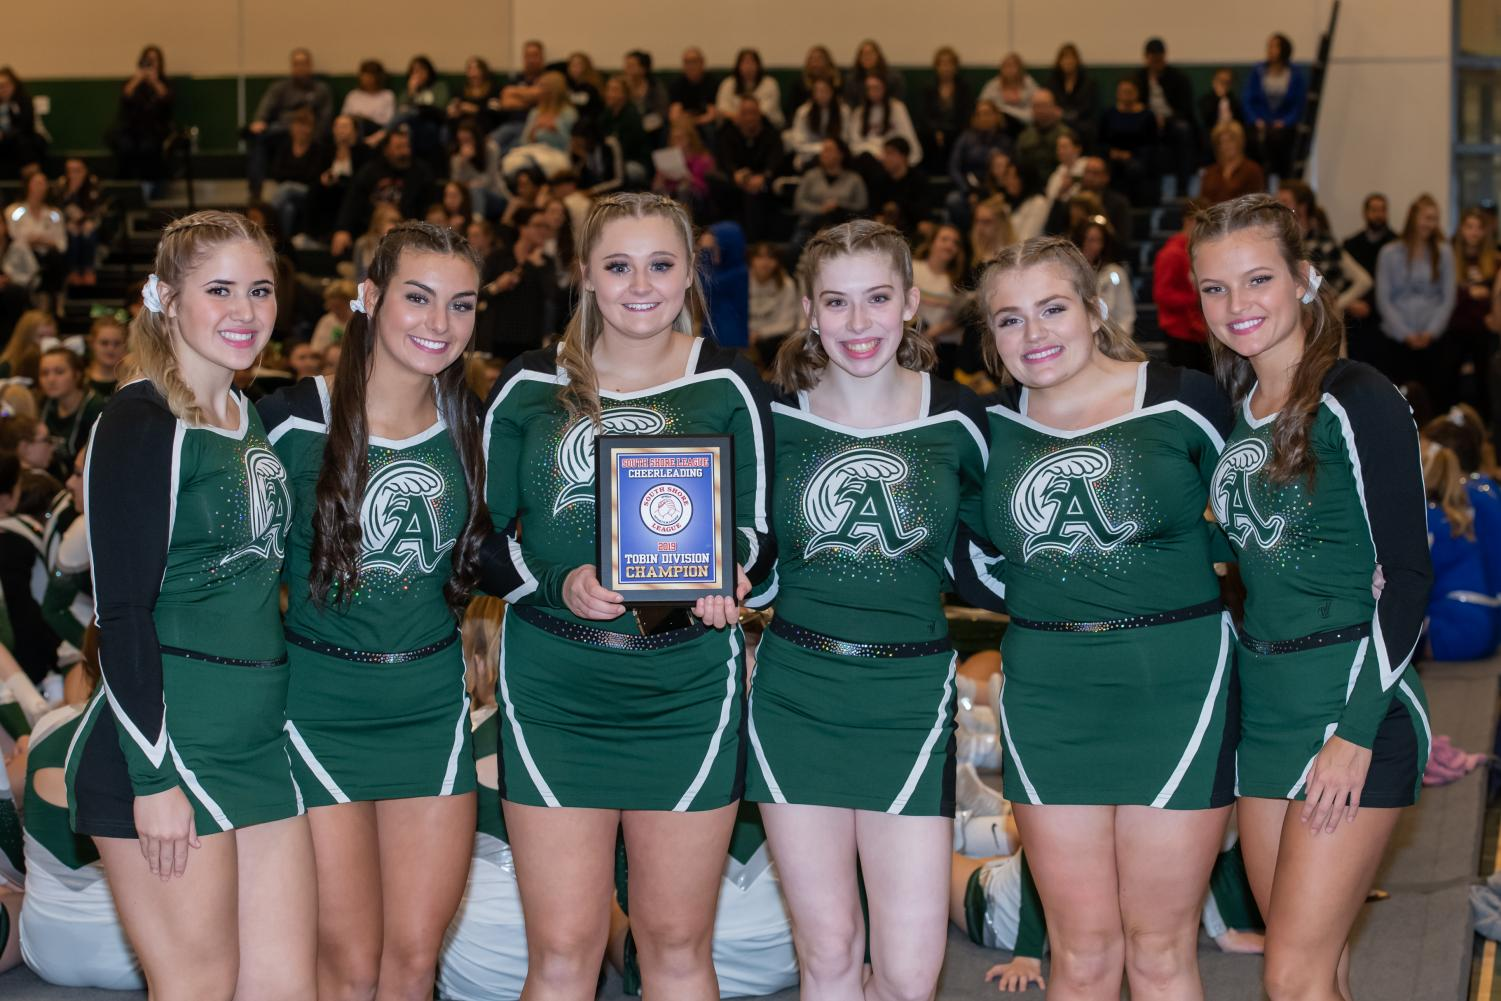 Seniors (left to right): Haven DiMambro, Julie Warsheski, Kerry Cardinal, Erin McDermott, Mikayla Littman, and Emmalee Ezzell posing with their first place plaque at the cheerleading competition held on Wednesday, November 6, at Abington High School.